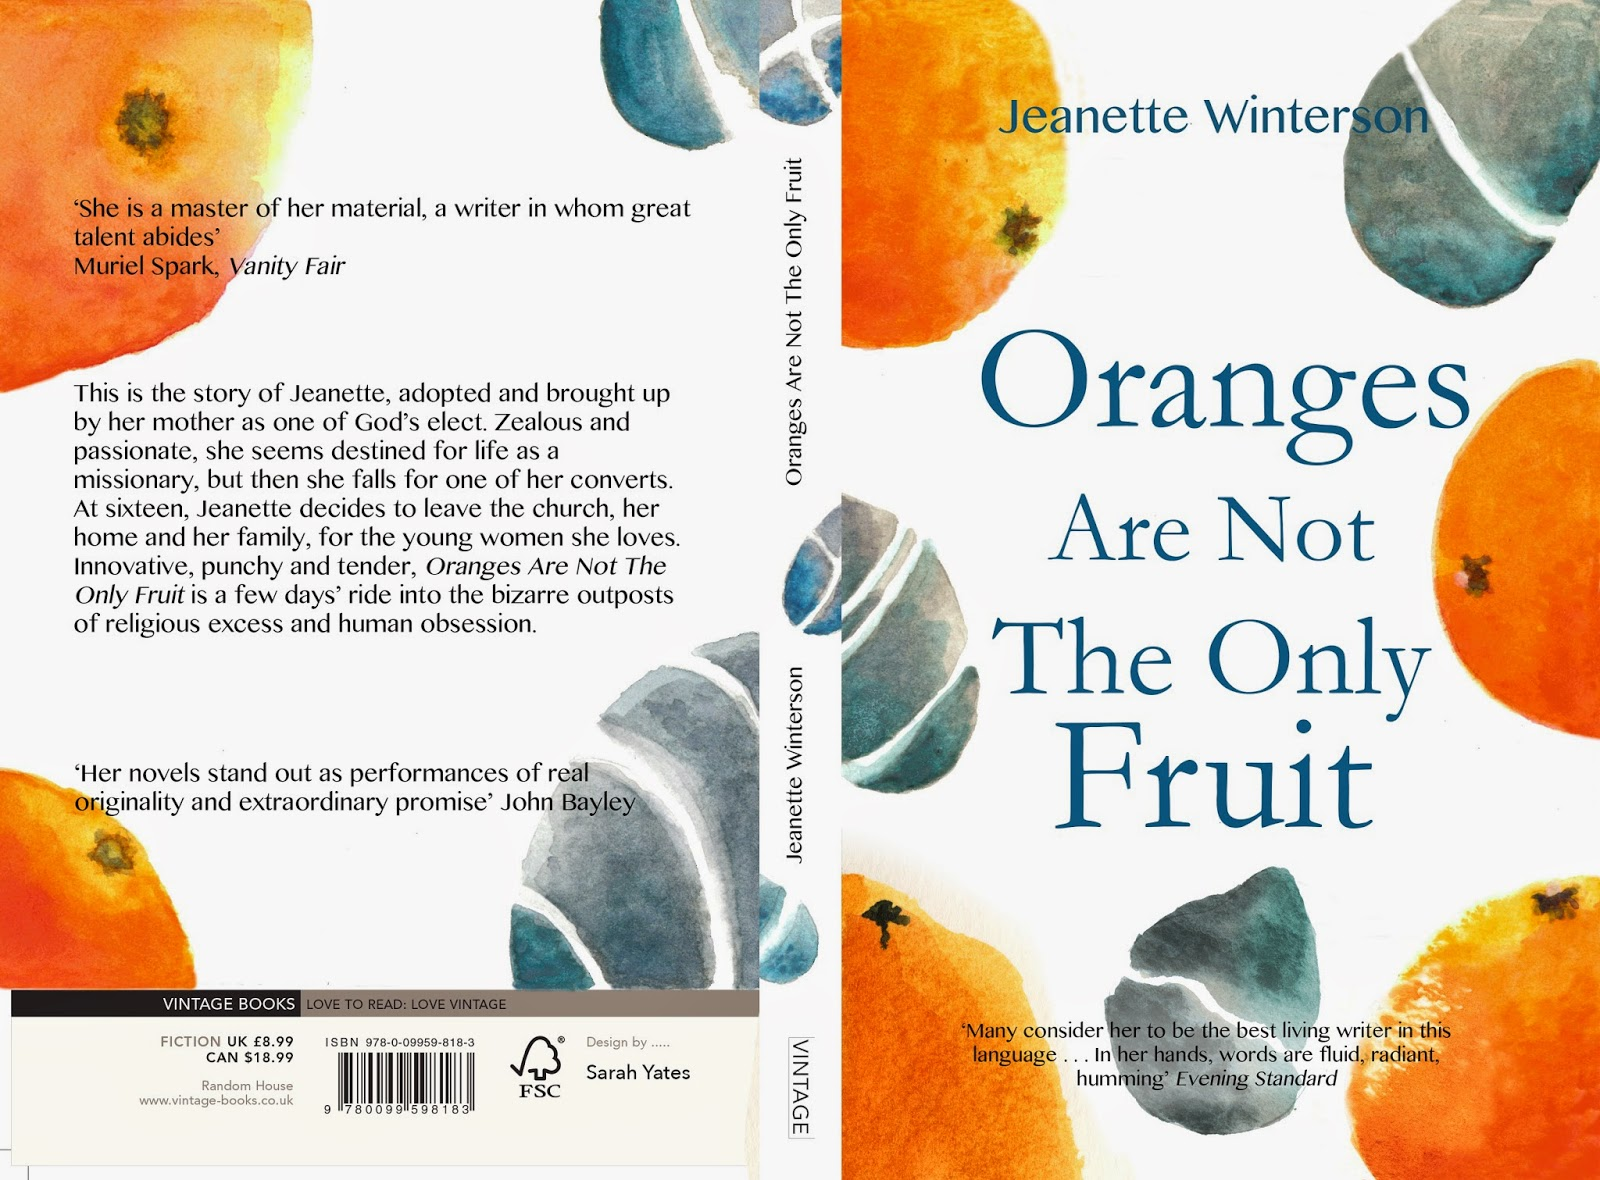 Oranges Are Not the Only Fruit Essay Topics & Writing Assignments